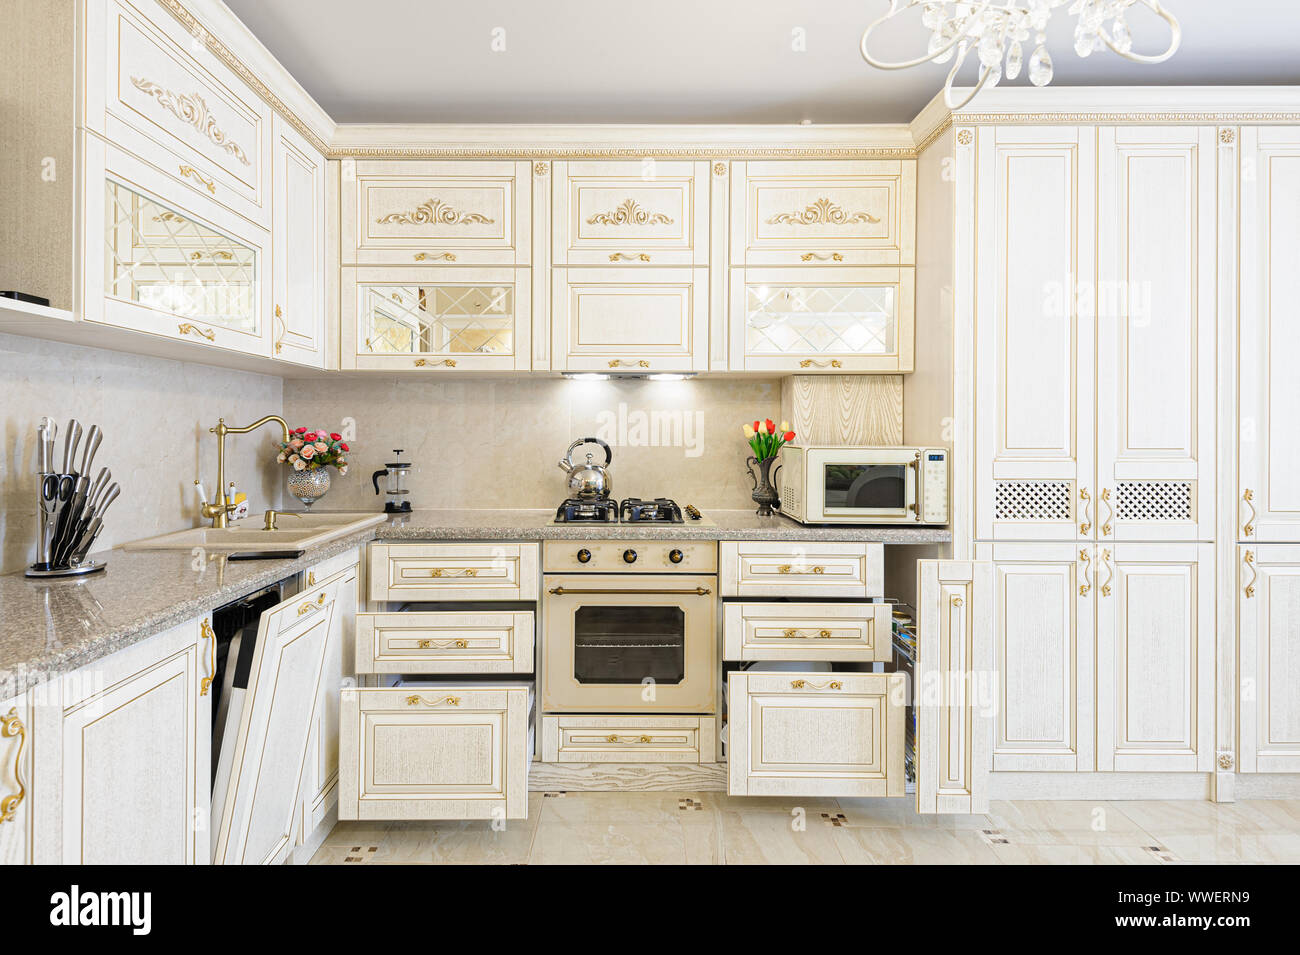 Luxury Modern Beige And Cream Colored Kitchen Interior Stock Photo Alamy